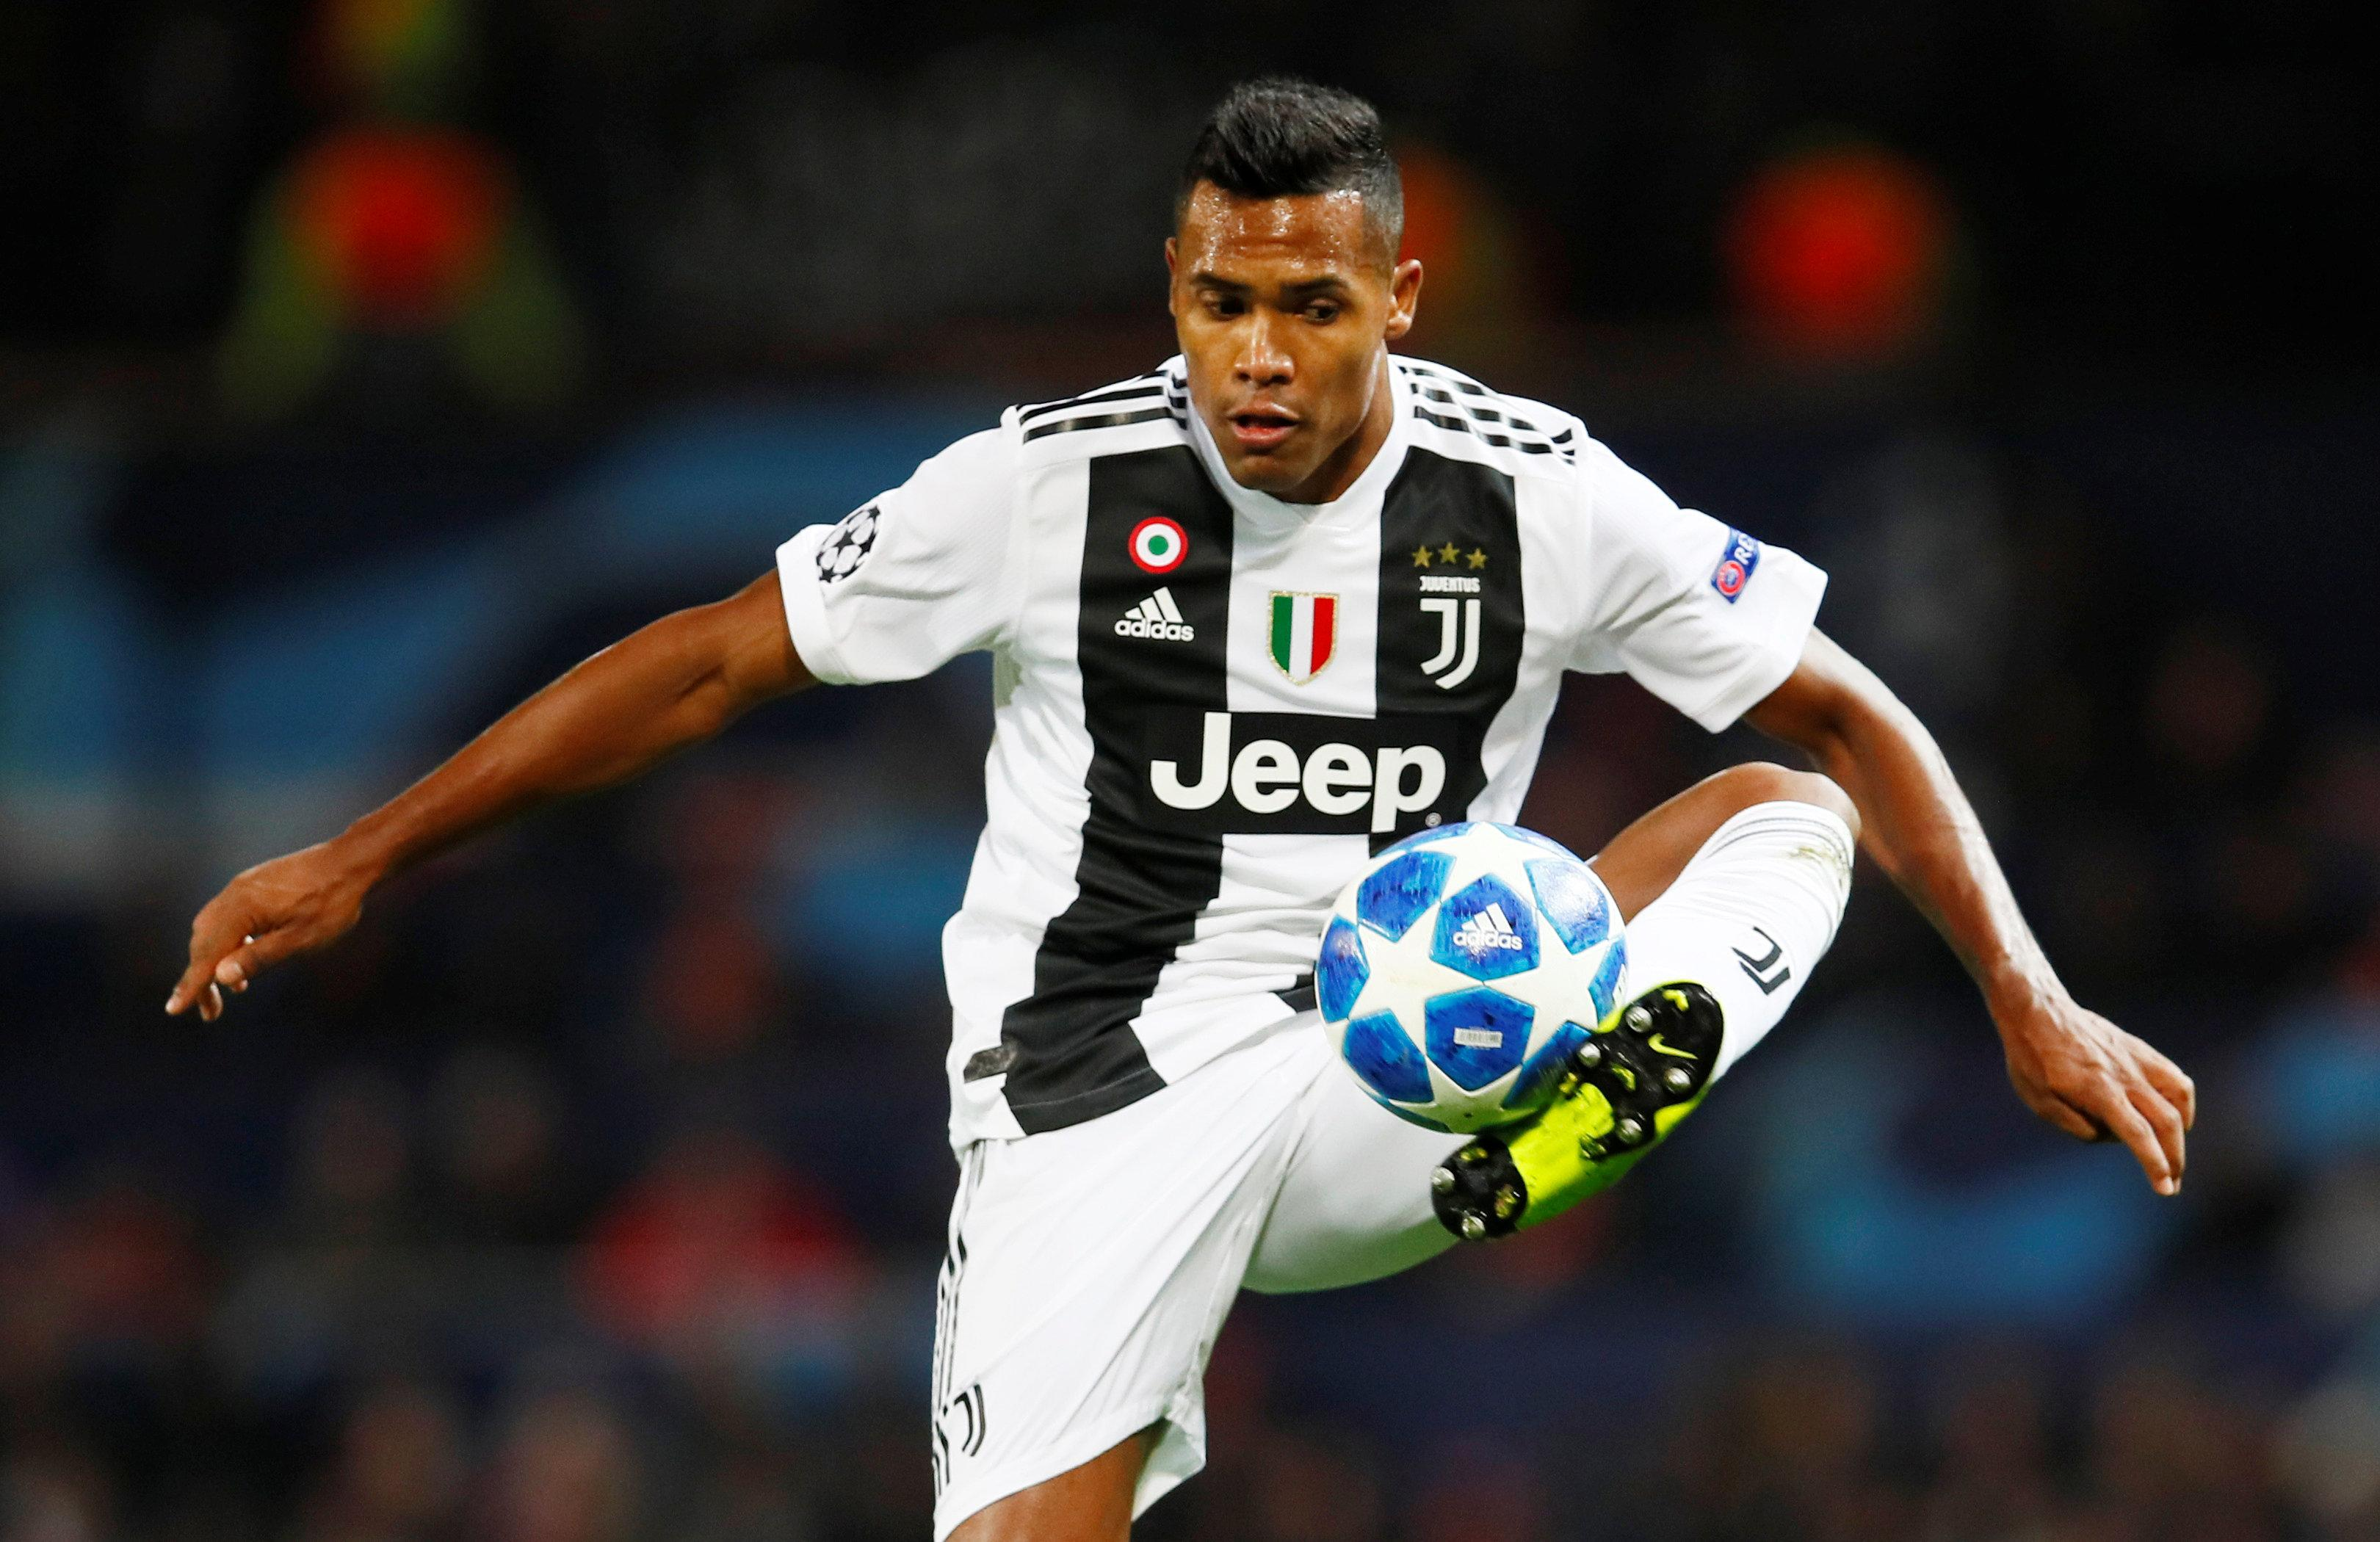 Juventus star Alex Sandro has been regularly linked with the club